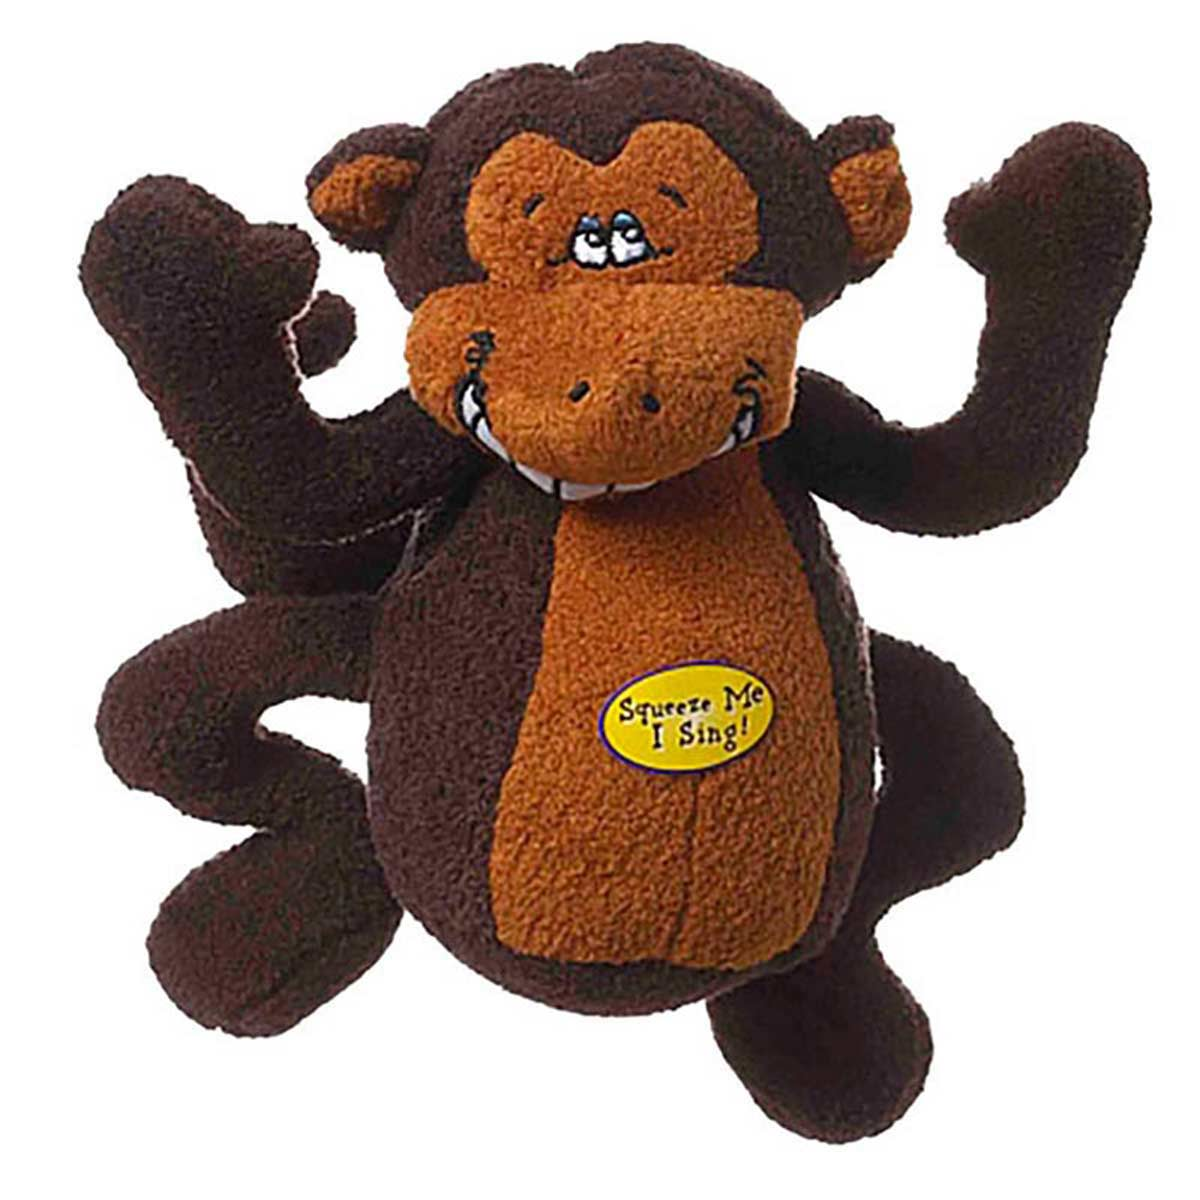 Deedle Dude Plush Monkey Dog Toy